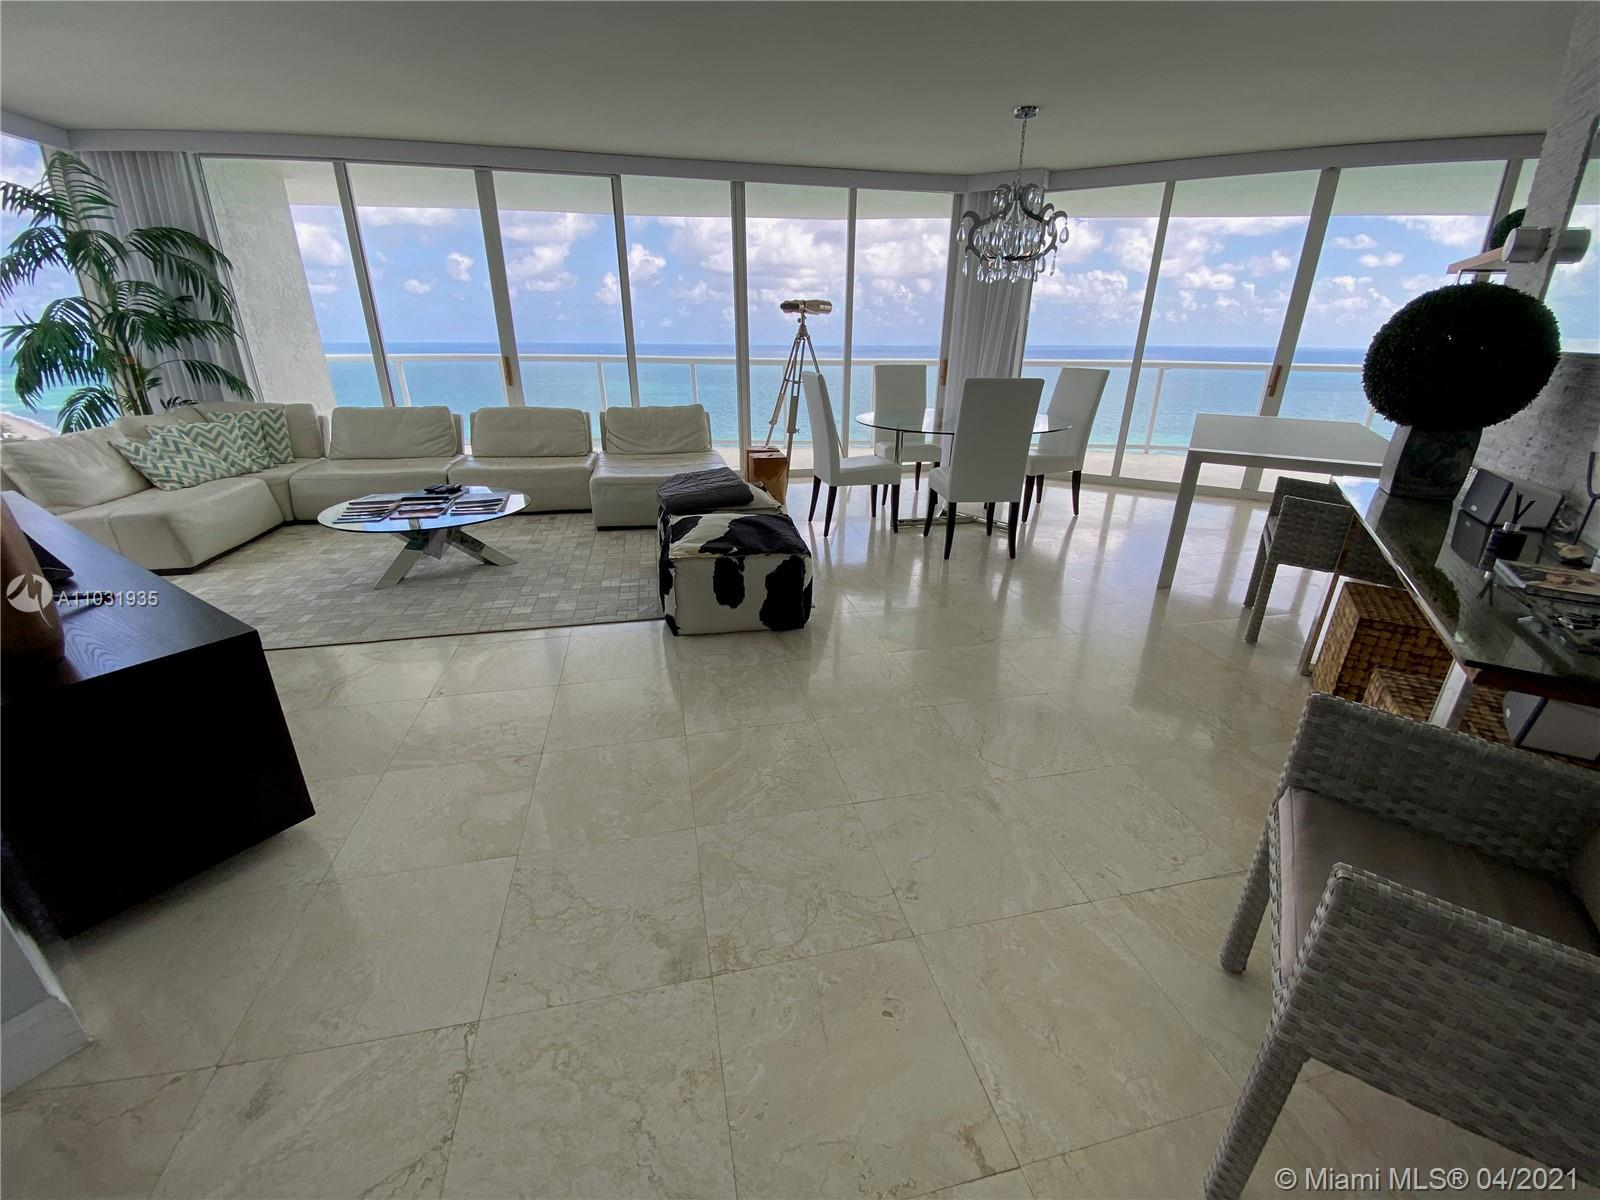 Best apartment listed for sale today in Millenium! Lower Penthouse with breathtaking views! It has 3